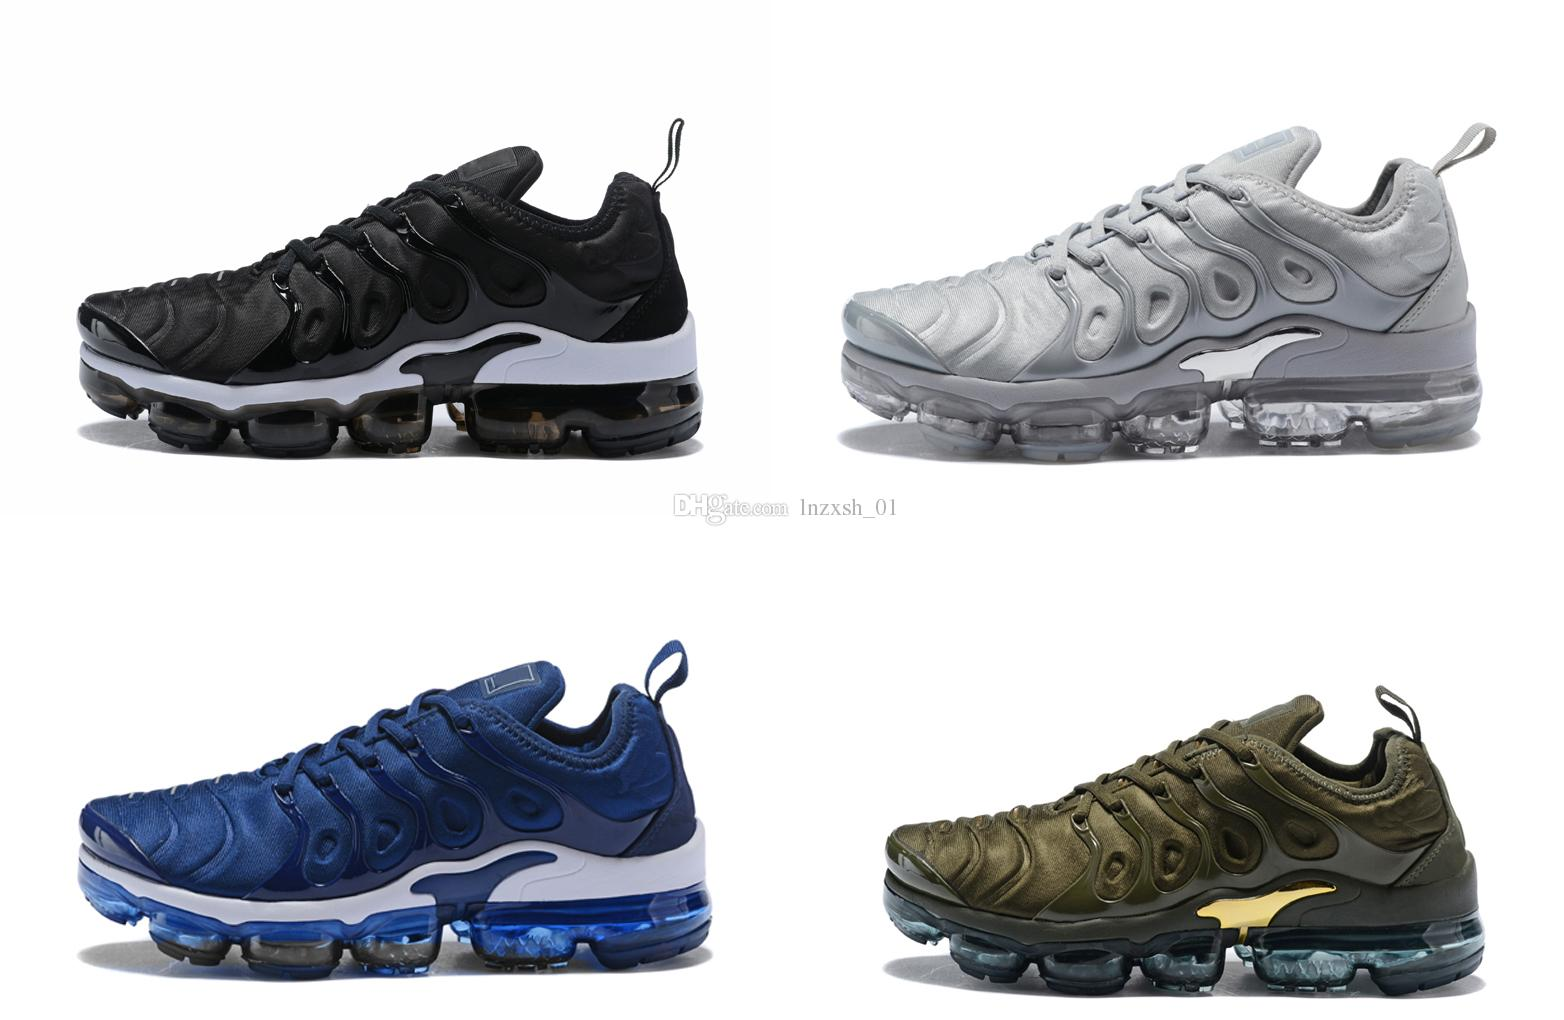 New Vapormax Plus TN Running Shoes high quality Striped White Silver Cool Grey for mens womens outdoor Sneakers cheap clearance new arrival Inexpensive online cheap collections buy cheap for cheap discount sneakernews qsVnD